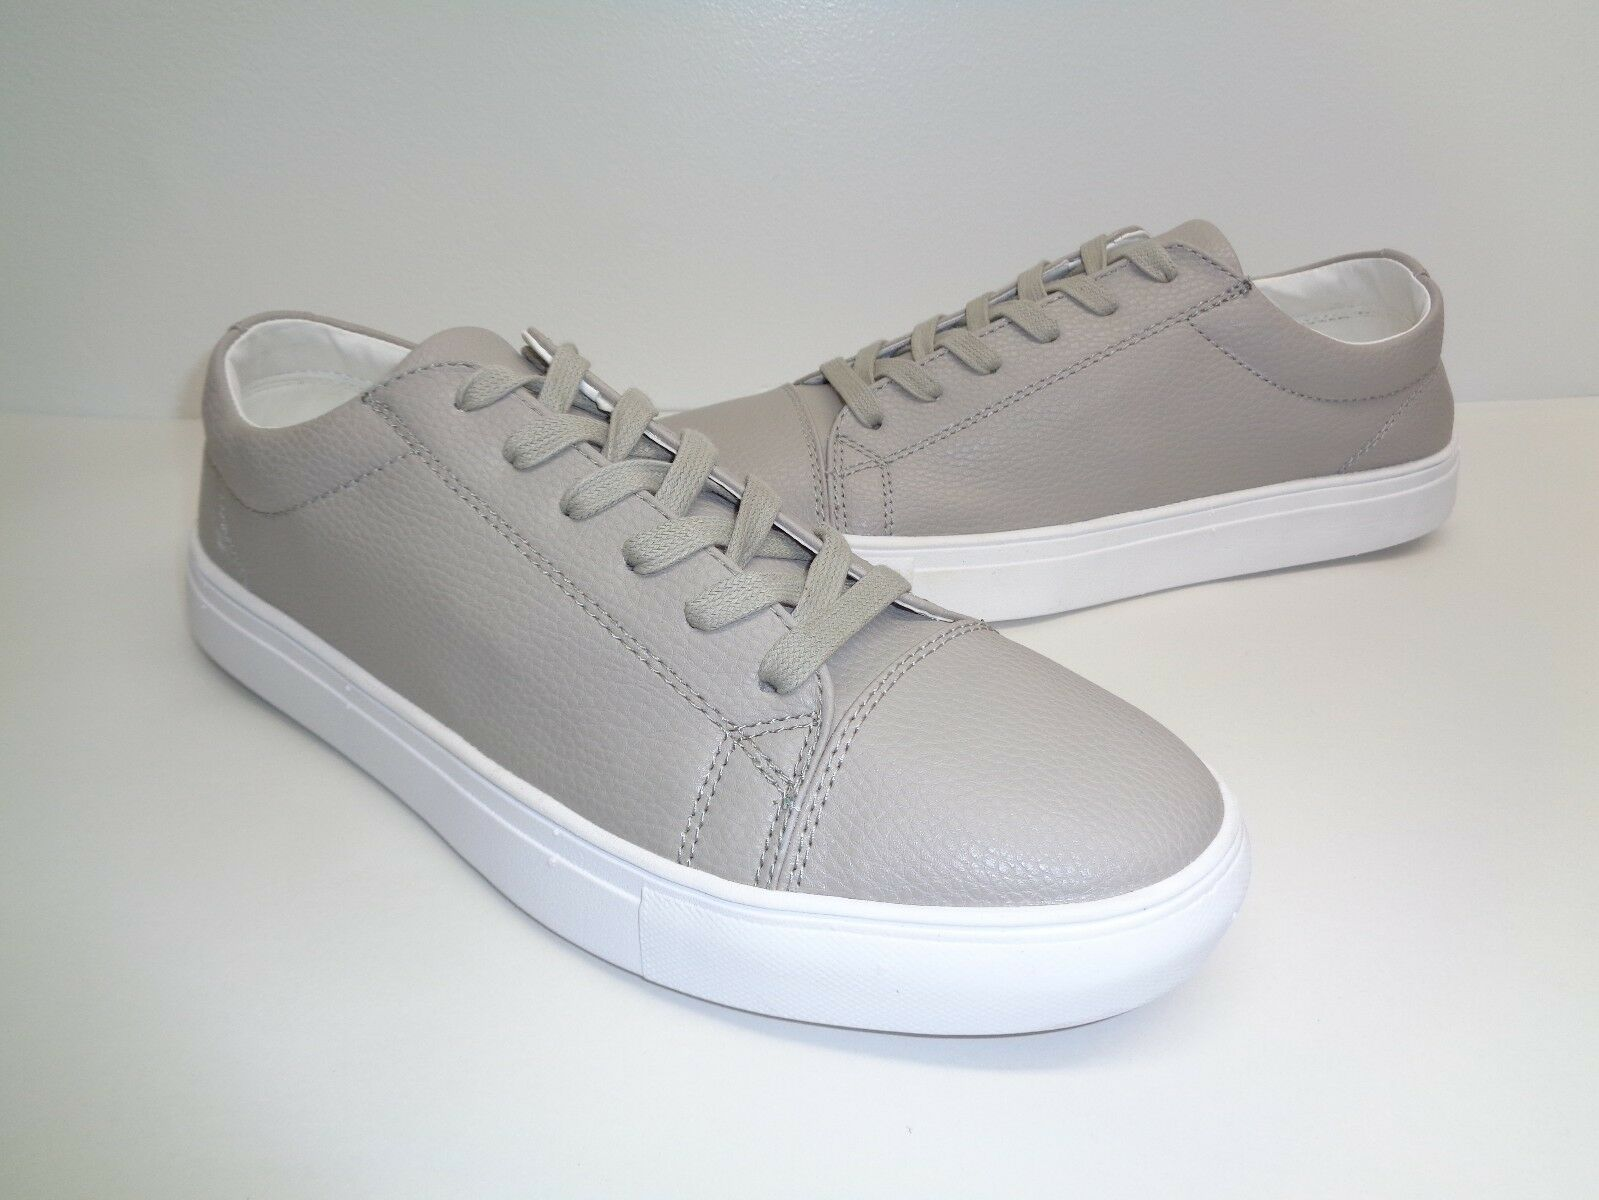 Steve Steve Steve Madden Size 9.5 M BOUNDED Light Gray Fashion  New Uomo Shoes 795240